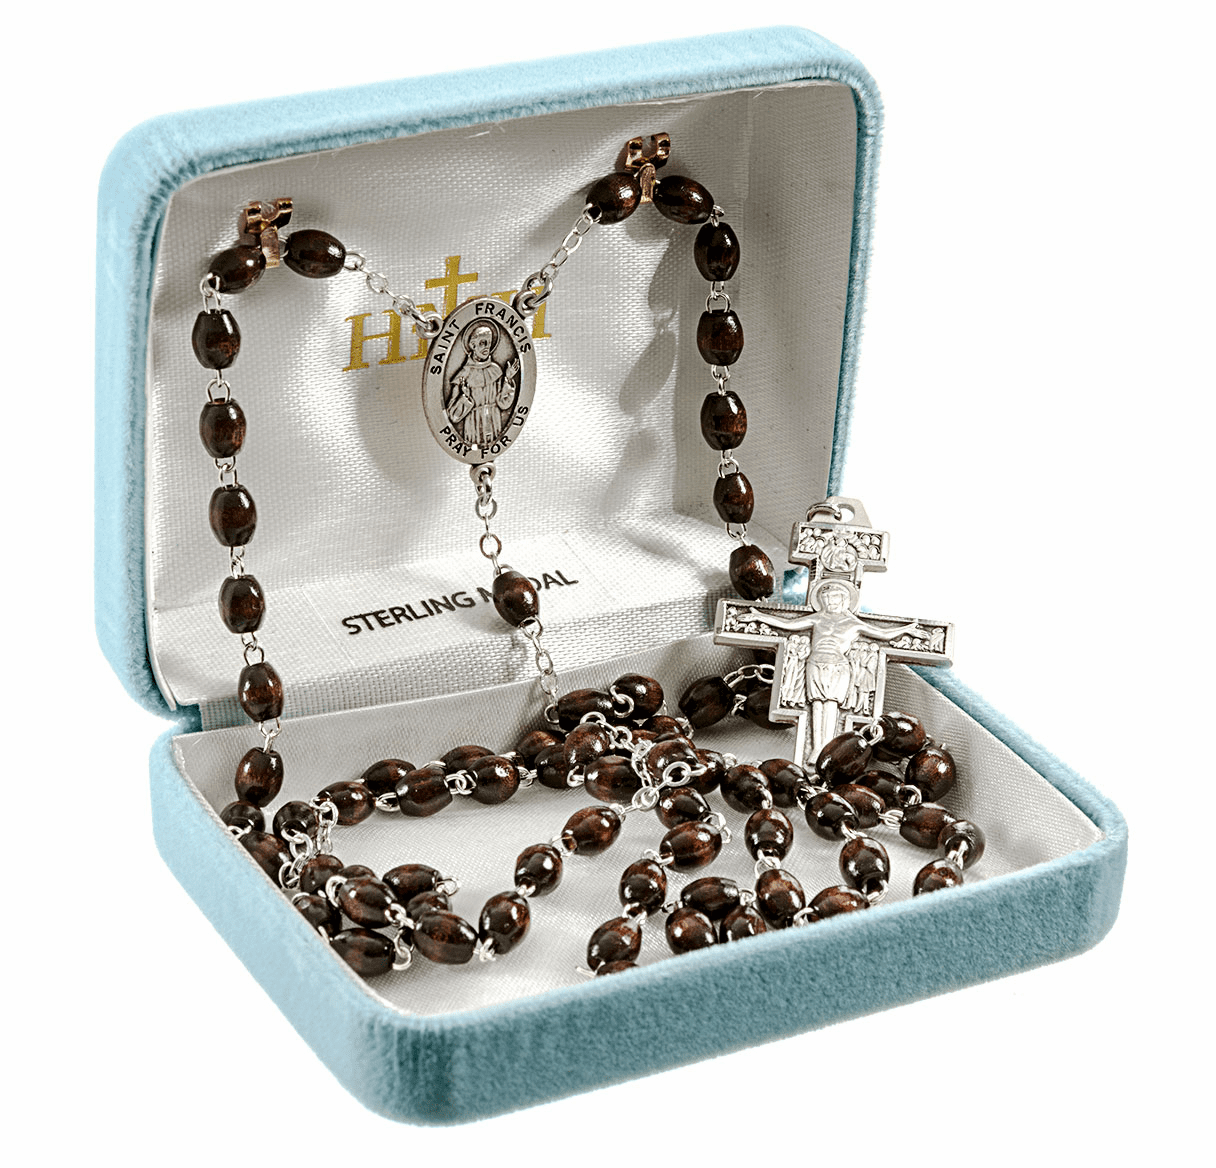 Saint Francis Franciscan 7 Decade Sterling Rosary by HMH Religious